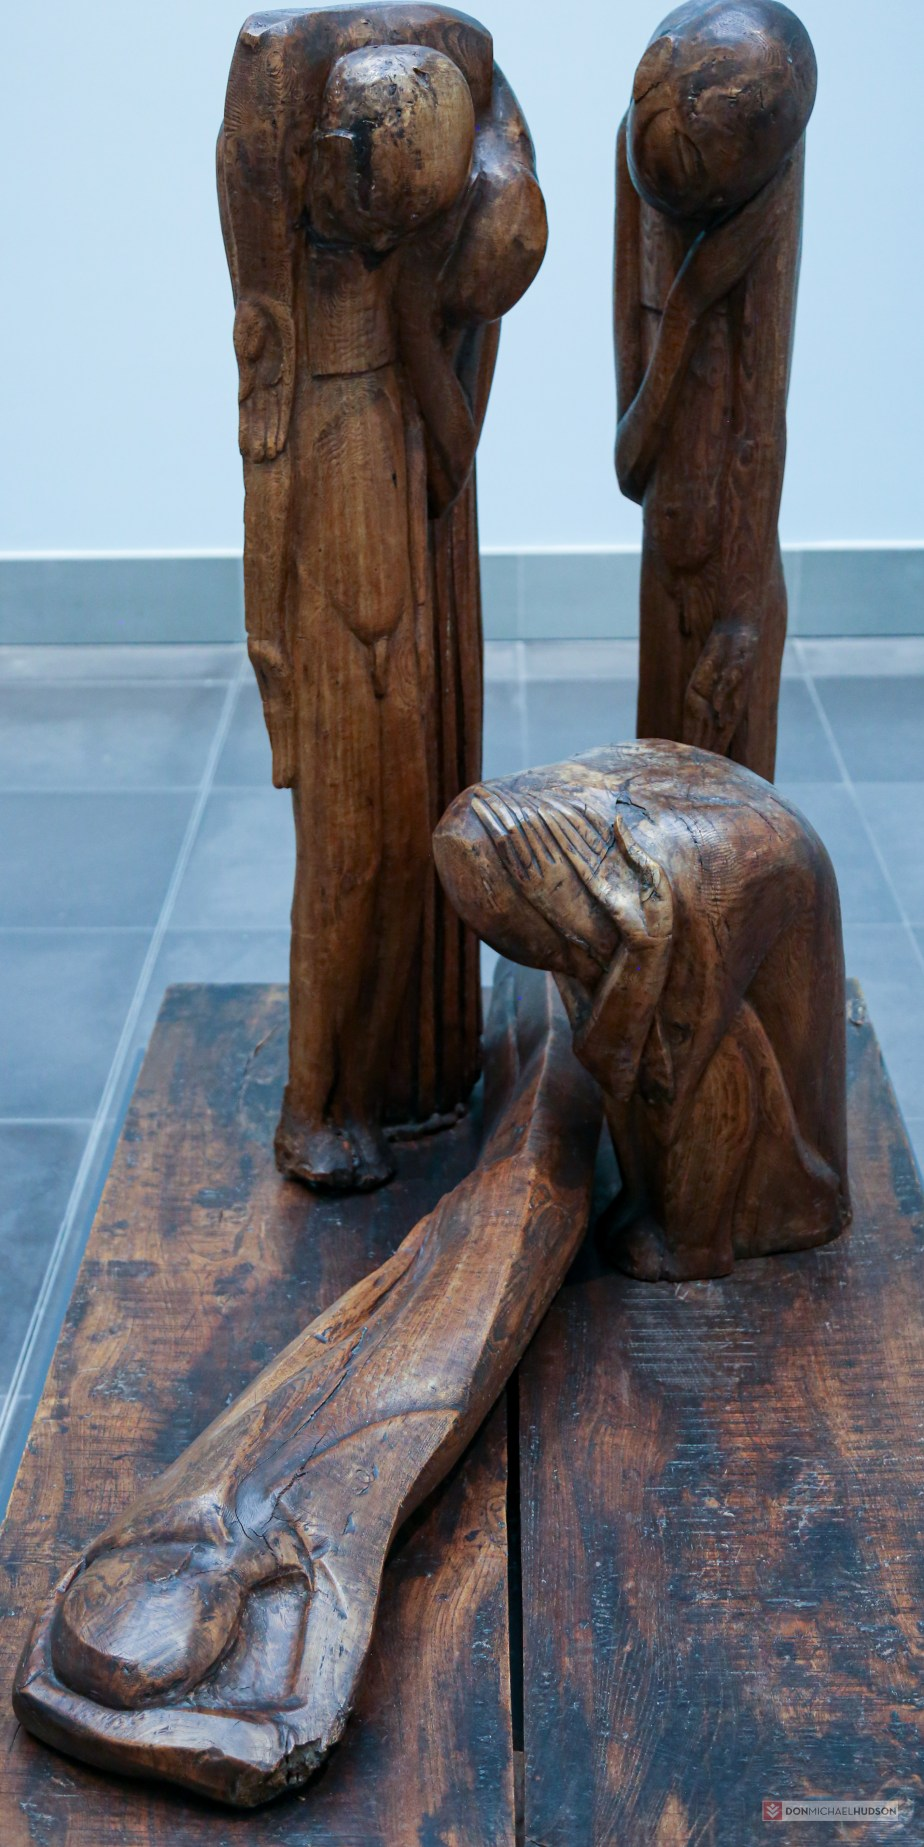 The Misery of Job by Ossip Zadkine